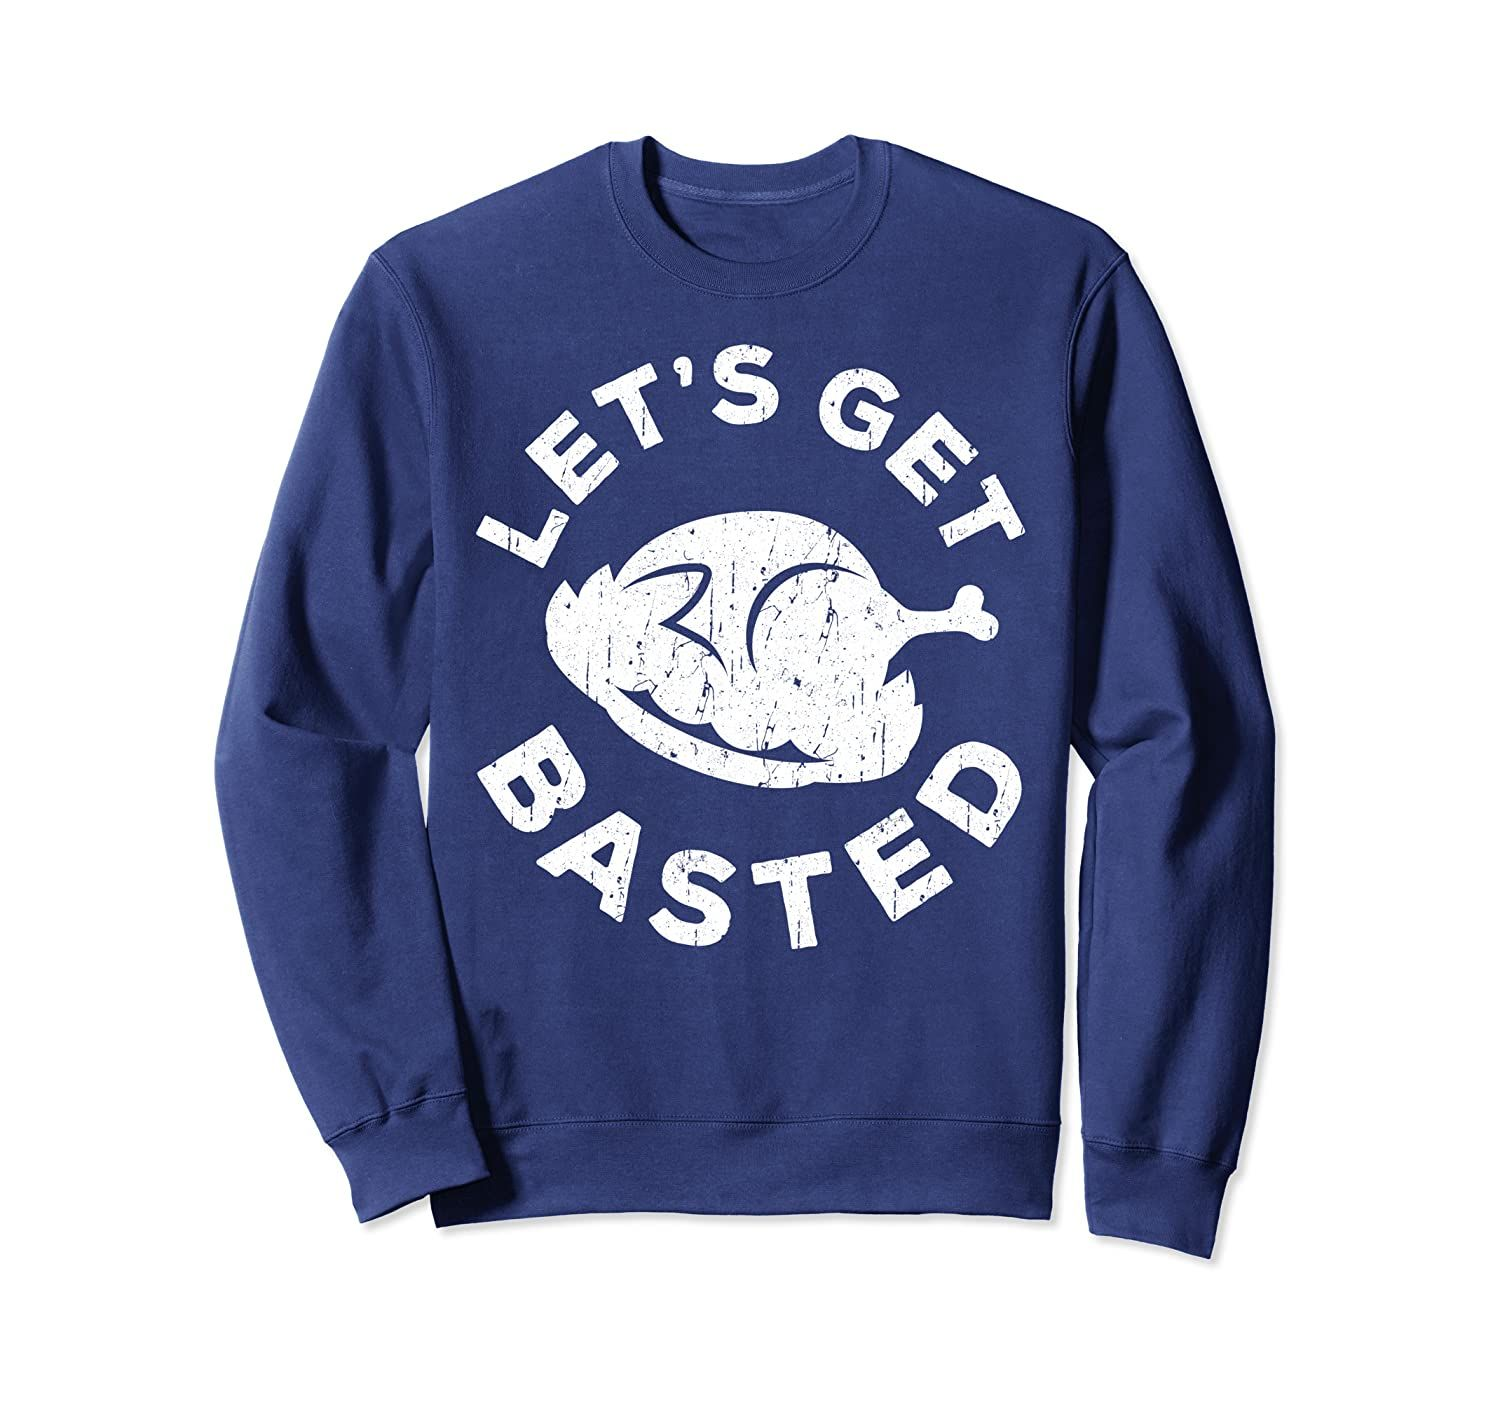 Let's Get Basted T-Shirt Thanksgiving Day Gift Sweatshirt